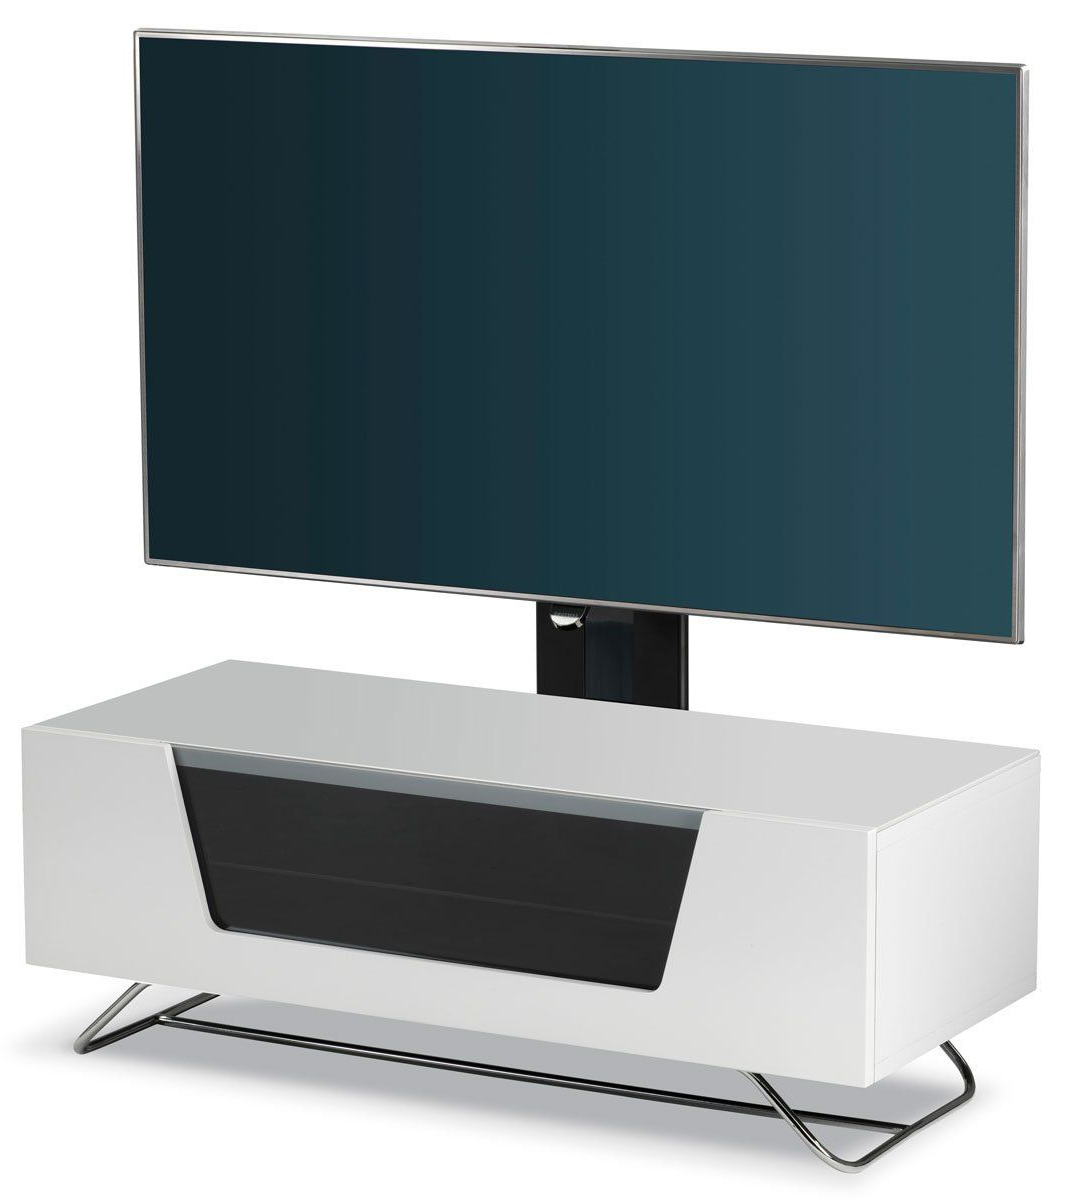 Well Known Alphason Chromium White Cantilever Tv Stand: Amazon.co.uk: Kitchen Within White Cantilever Tv Stands (Gallery 7 of 20)